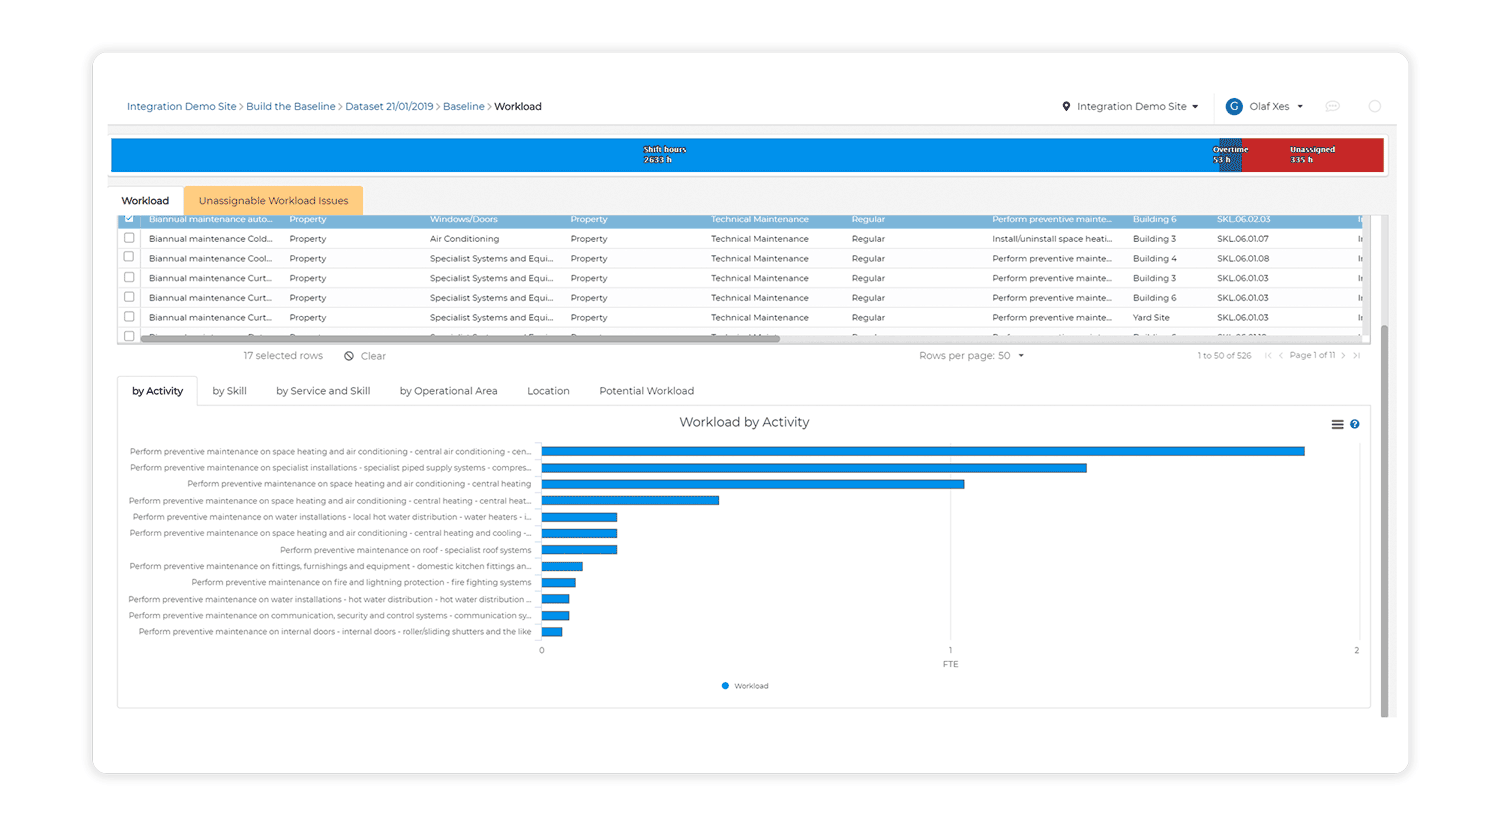 A screenshot of the 'Workload Activity' features within Workforce Optimizer